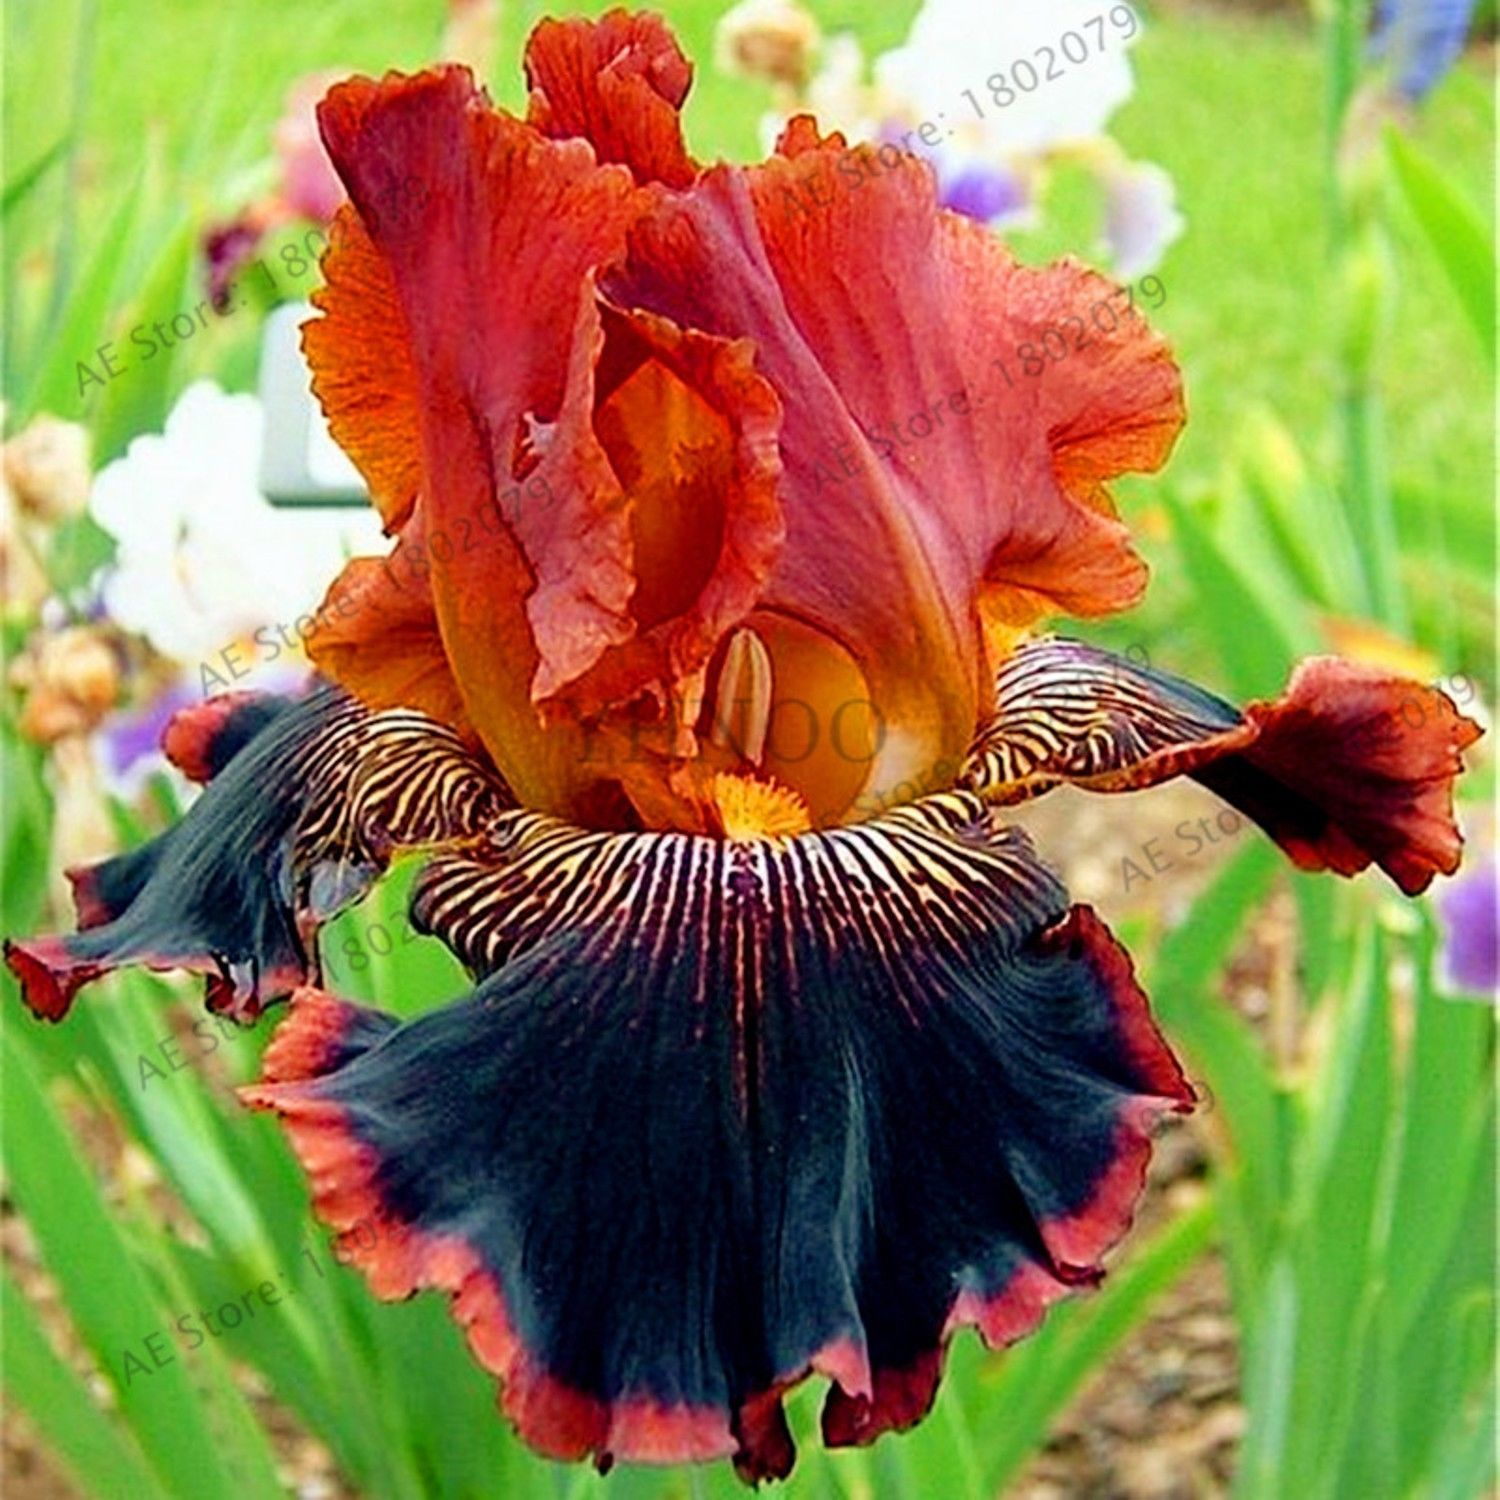 50pcs Bag Mixed Color Iris Flower Seeds Rare Flower Seeds Bearded Iris Seeds Ebay Iris Flowers Iris Garden Rare Flowers